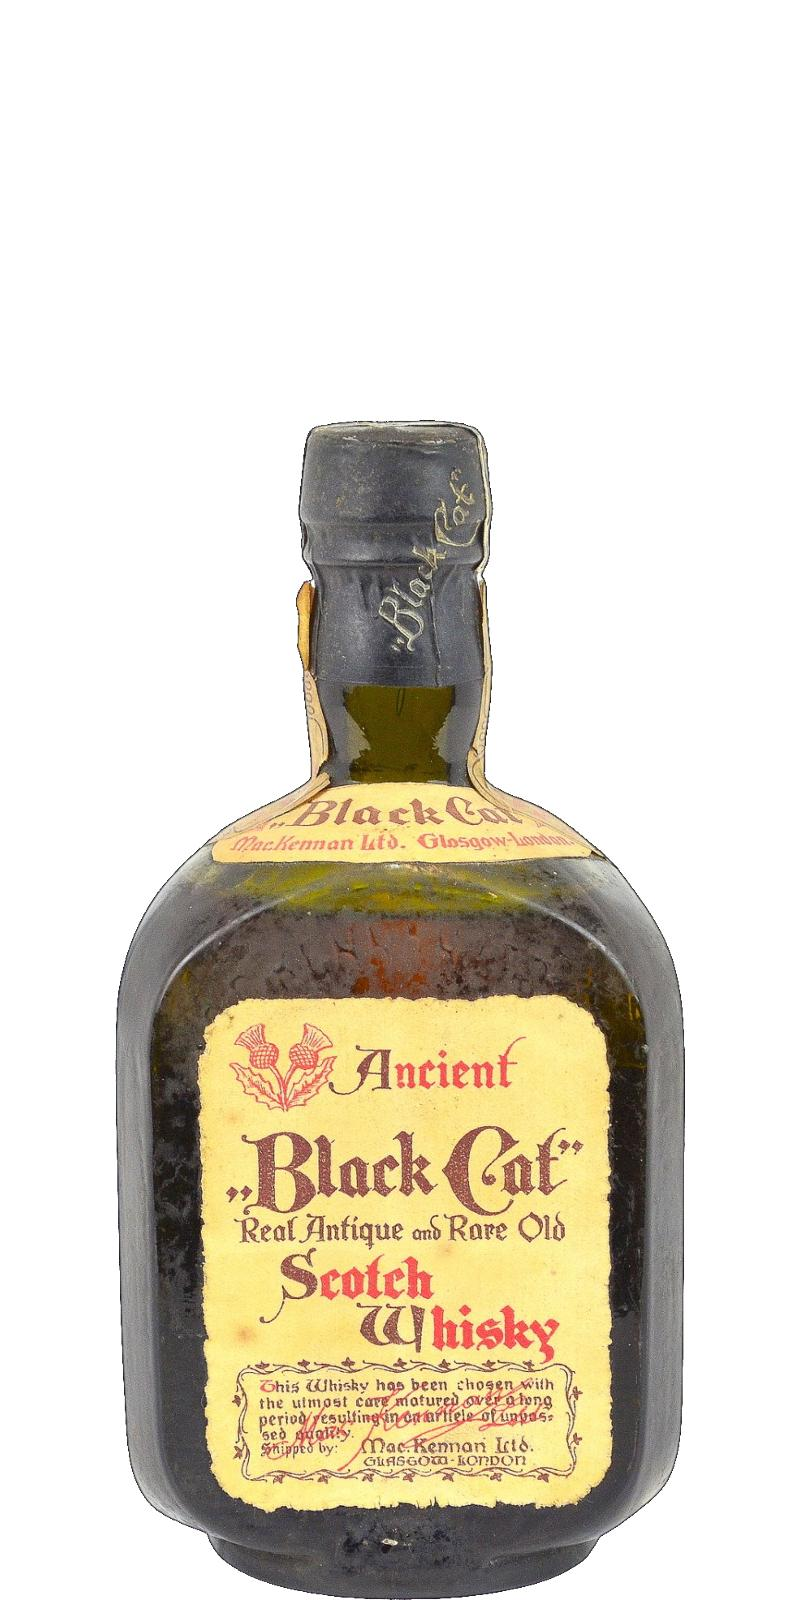 Black Cat Ancient Scotch Whisky